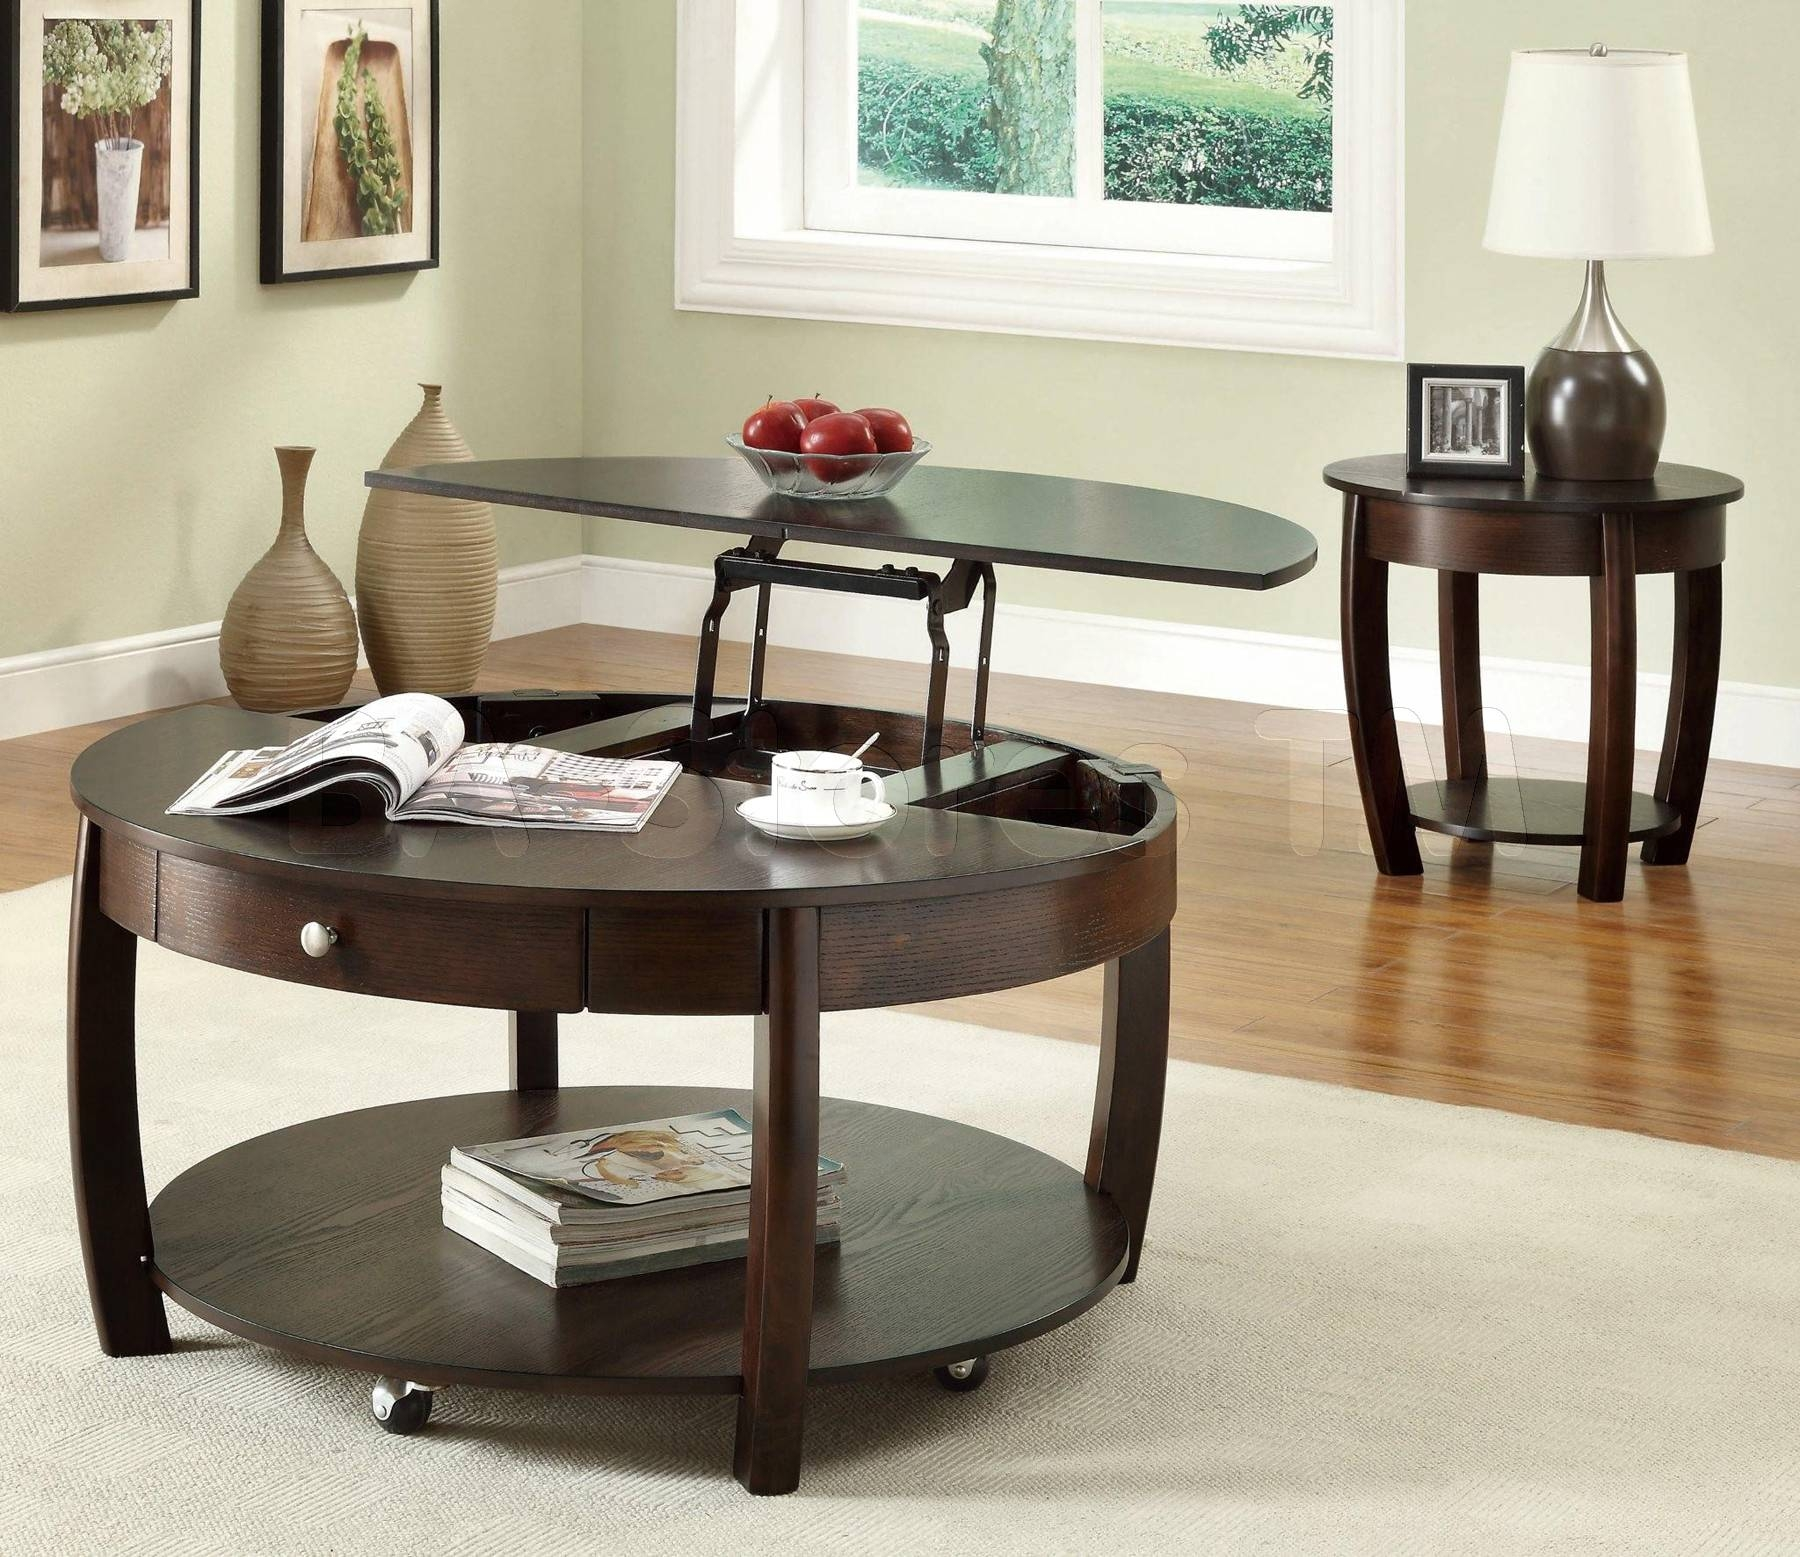 Lift Top Coffee Tables Design Images Photos Pictures pertaining to Elevating Coffee Tables (Image 21 of 30)